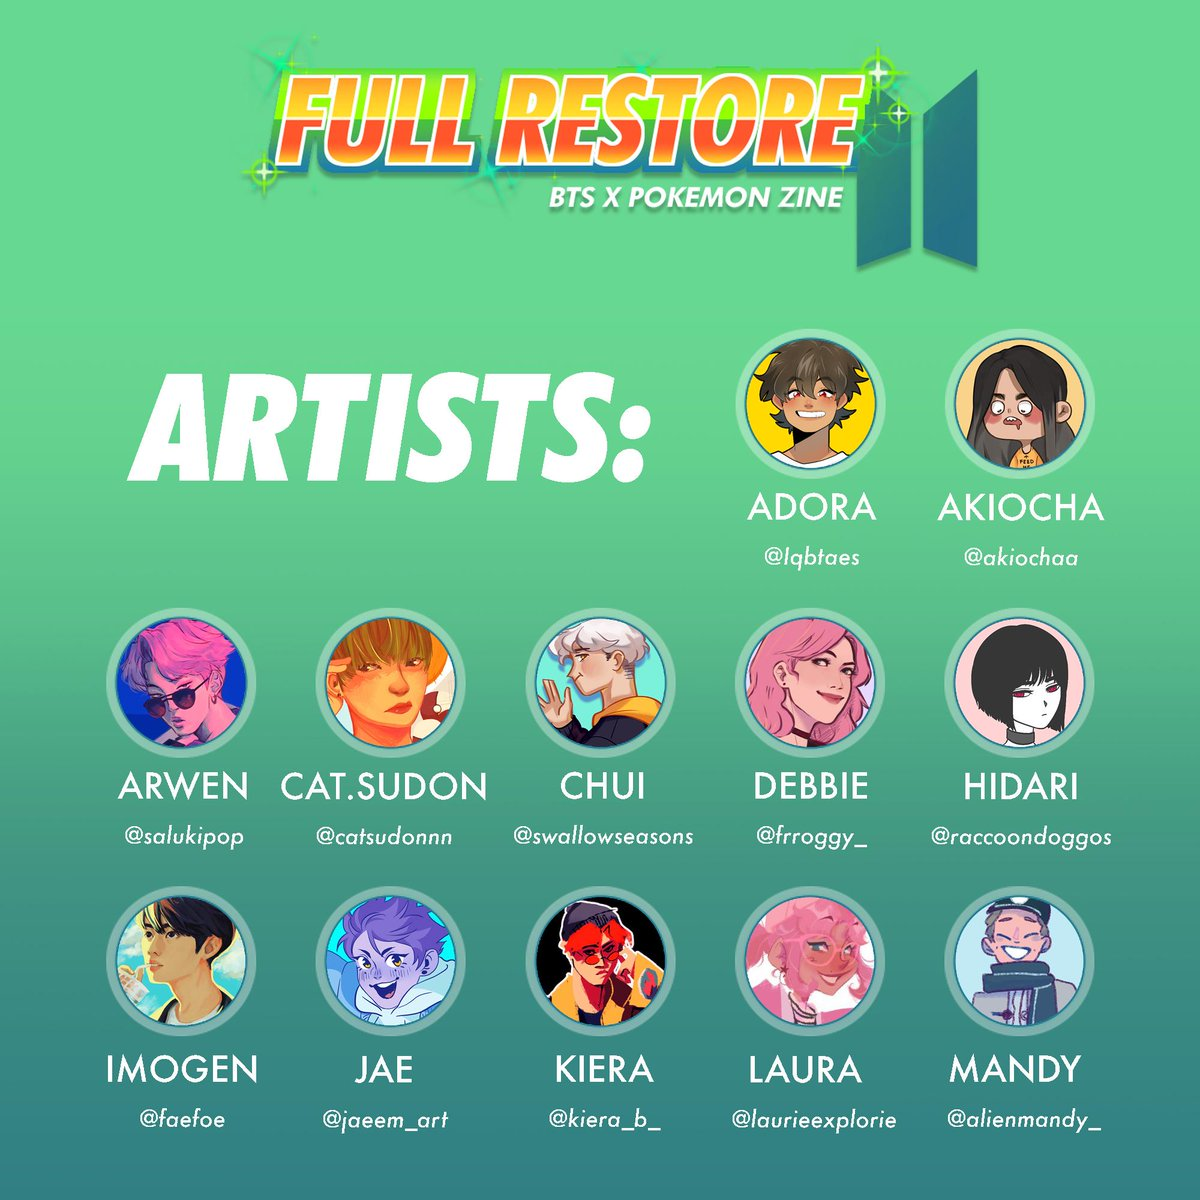 [RTs] We're excited to finally announce the official contributors list for FULL RESTORE: a A #BTS x #Pokemon zine  We're super excited to have so many talented creators on board!<br>http://pic.twitter.com/zyfuOxR2RD